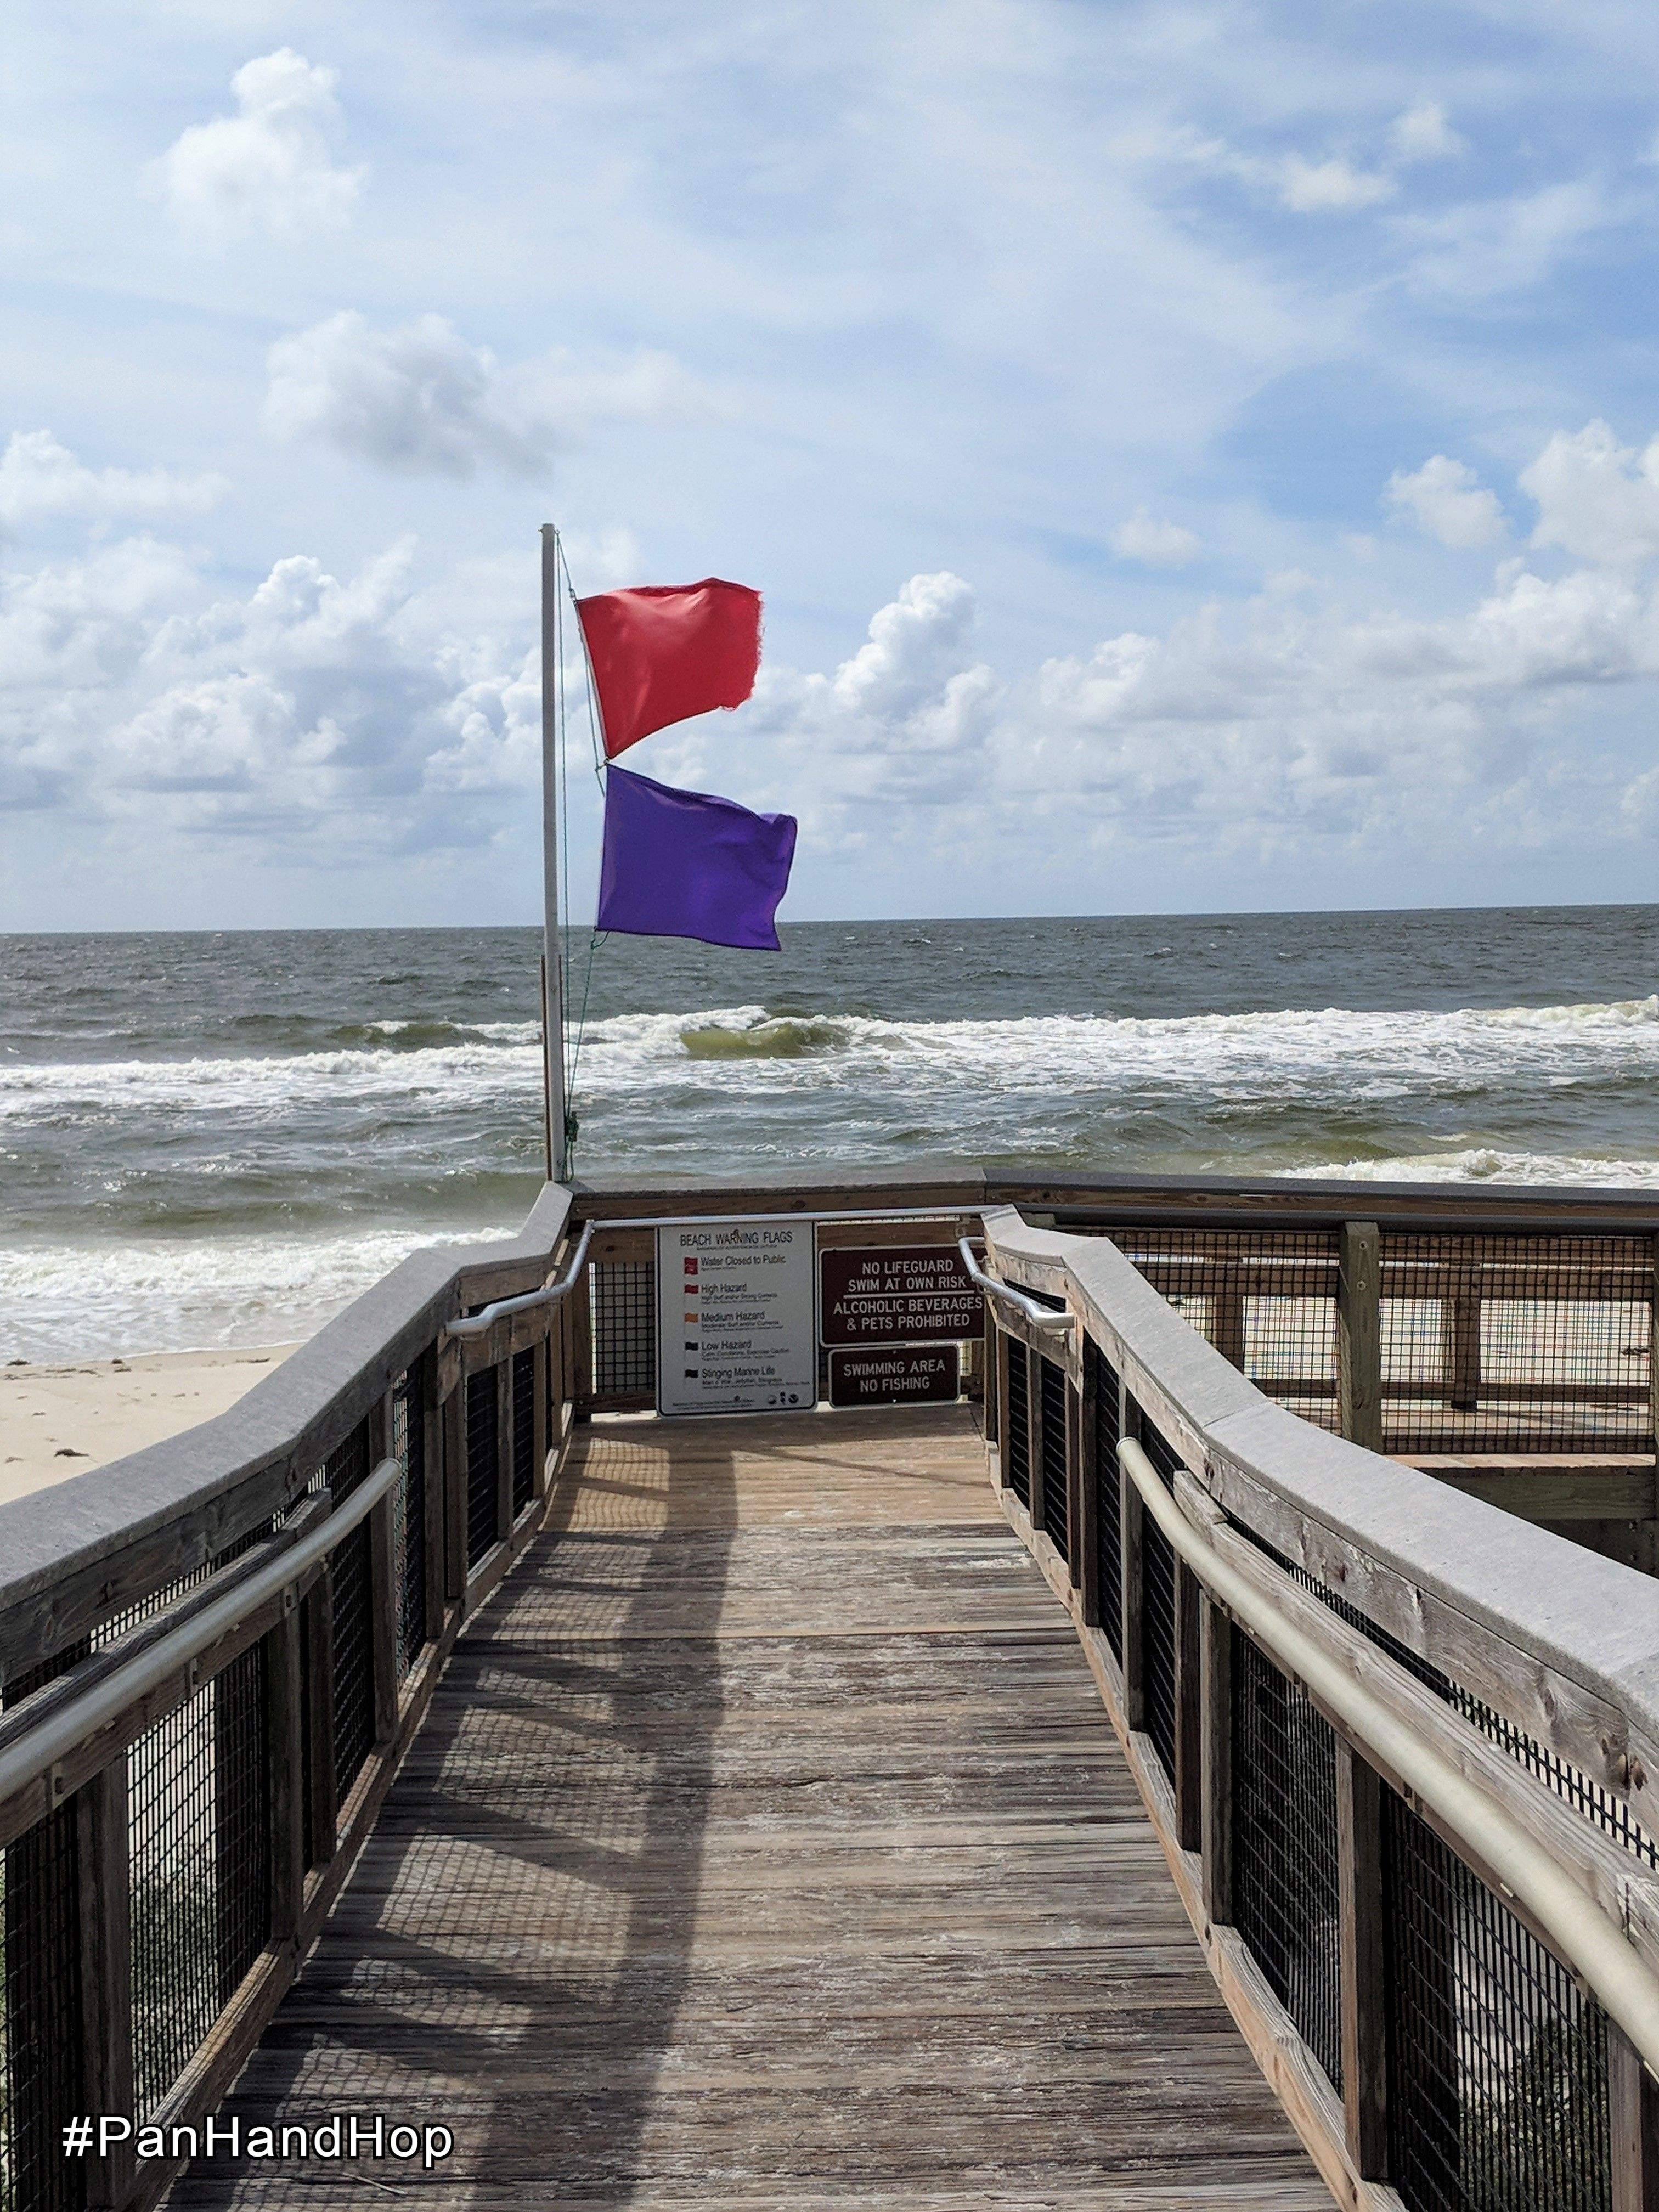 Boardwalk with flags showing hazardous surf and jellyfish warnings